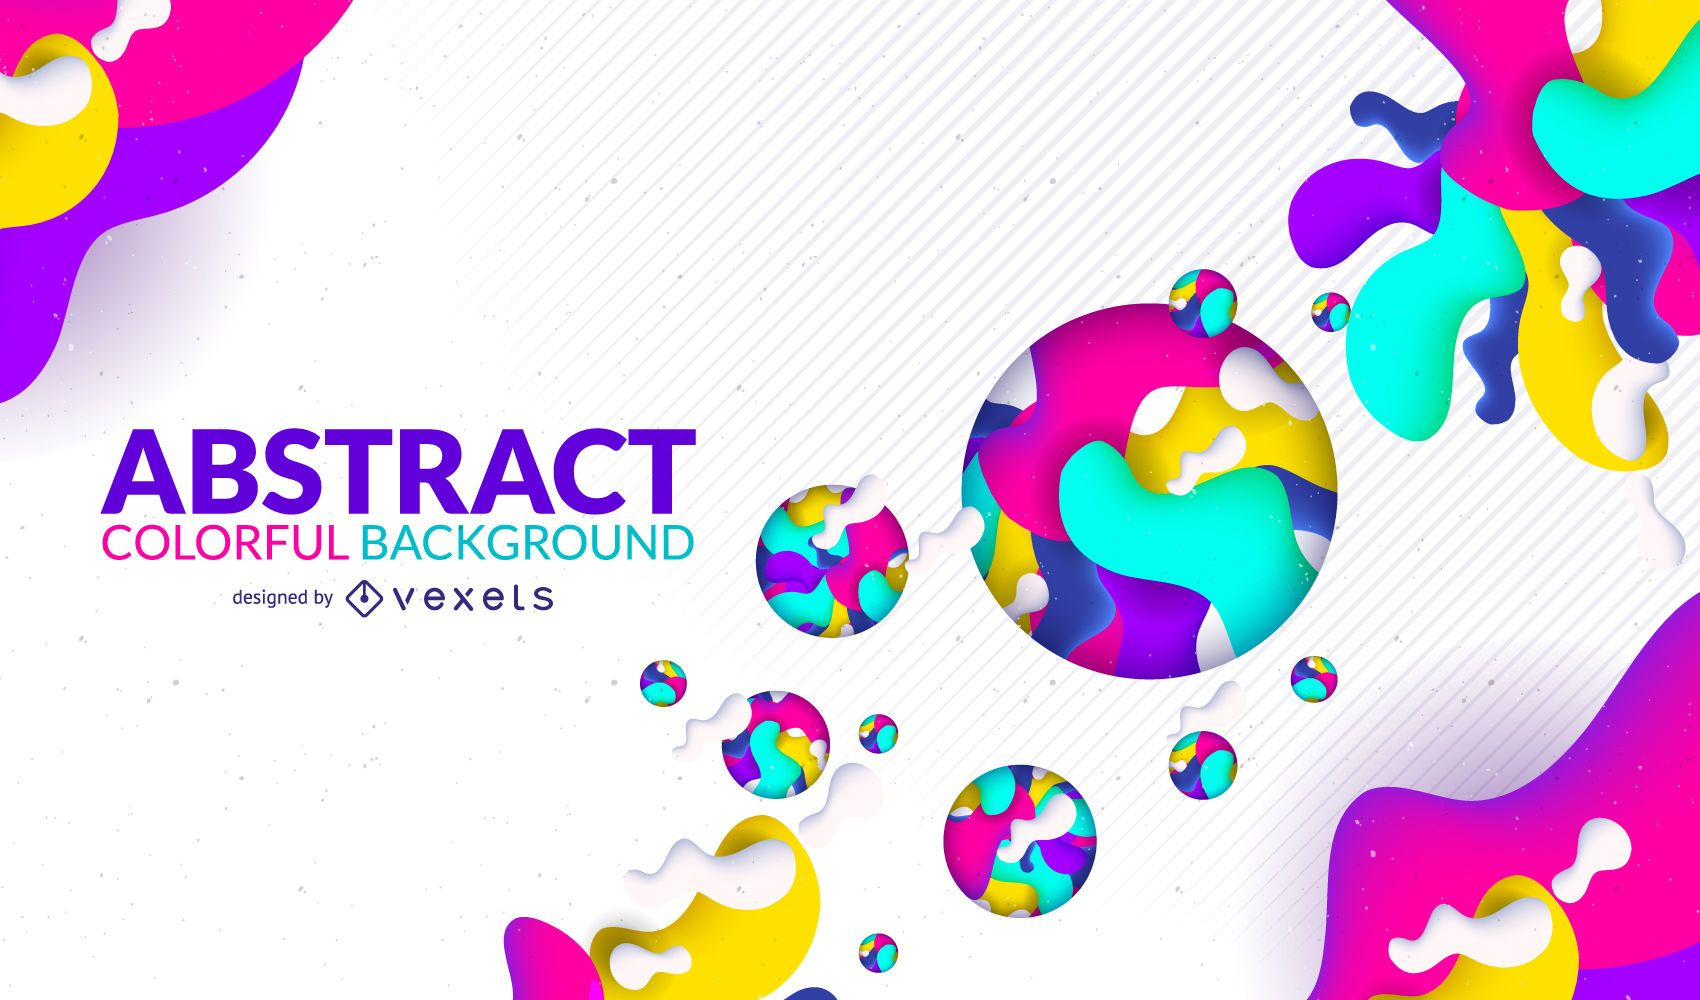 Abstract background with colorful gradients